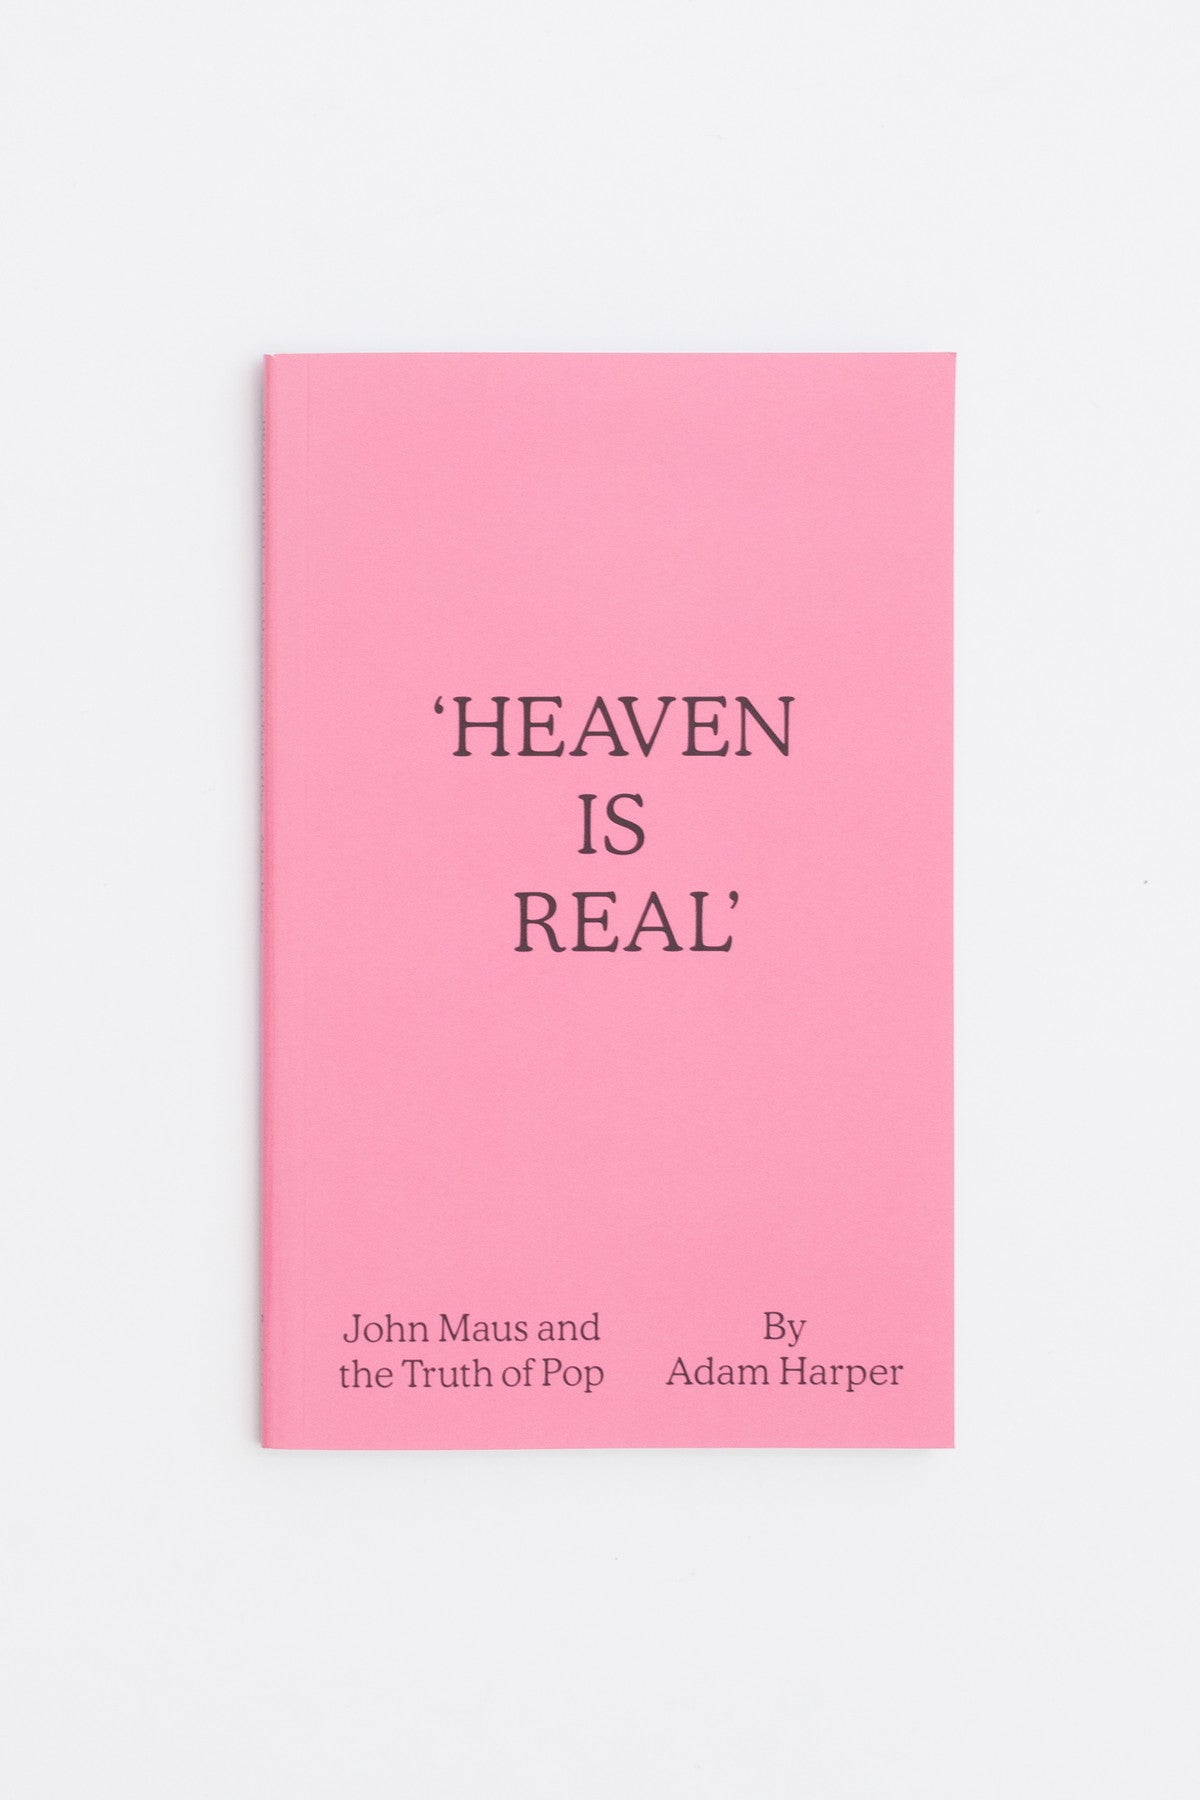 Heaven is Real: John Maus and the Truth of Pop - Adam Harper